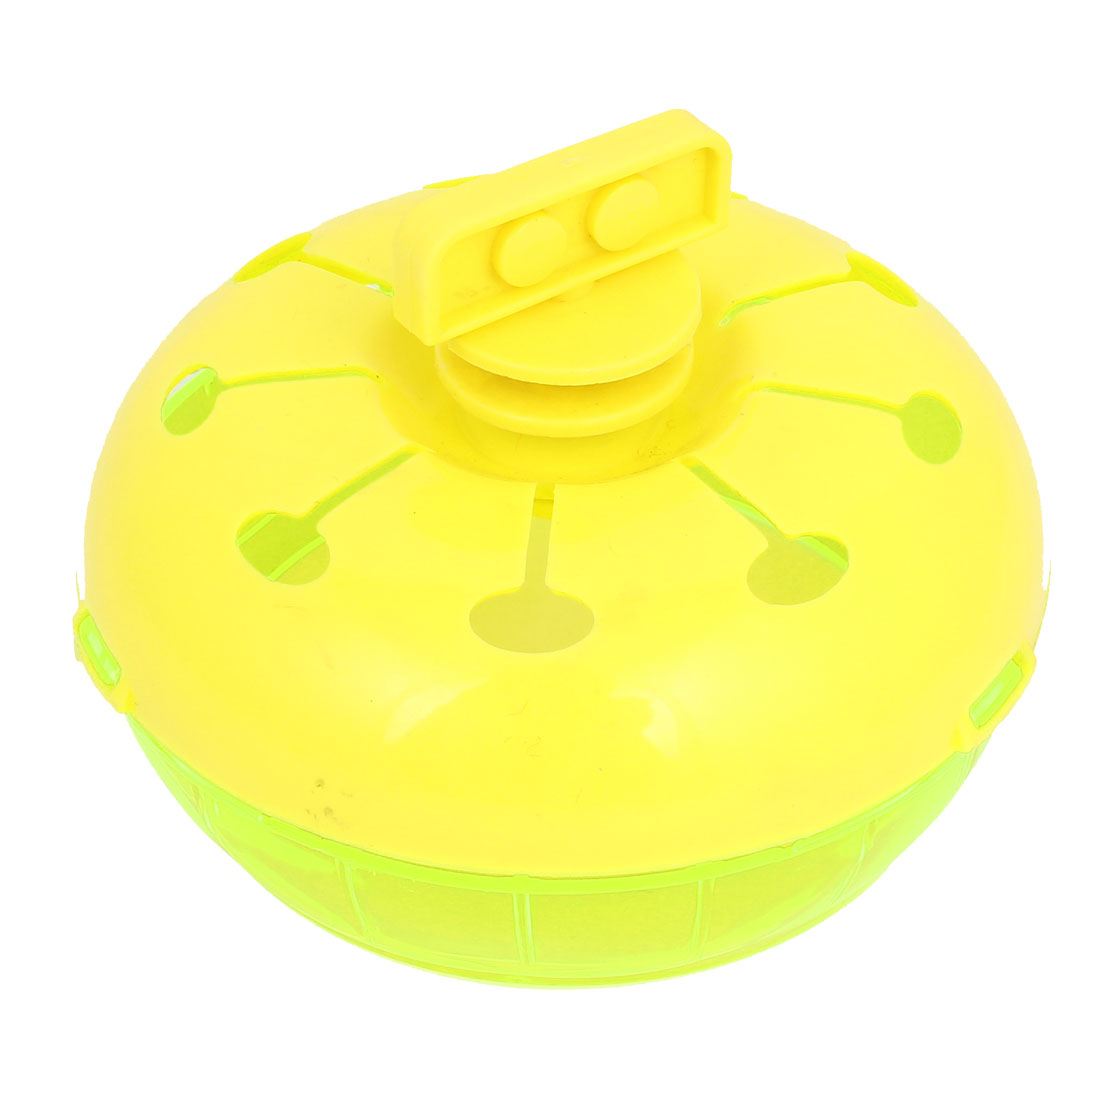 Round Shape Green Yellow Plastic Training Tool Turnable Toy for Pet Dog Cat